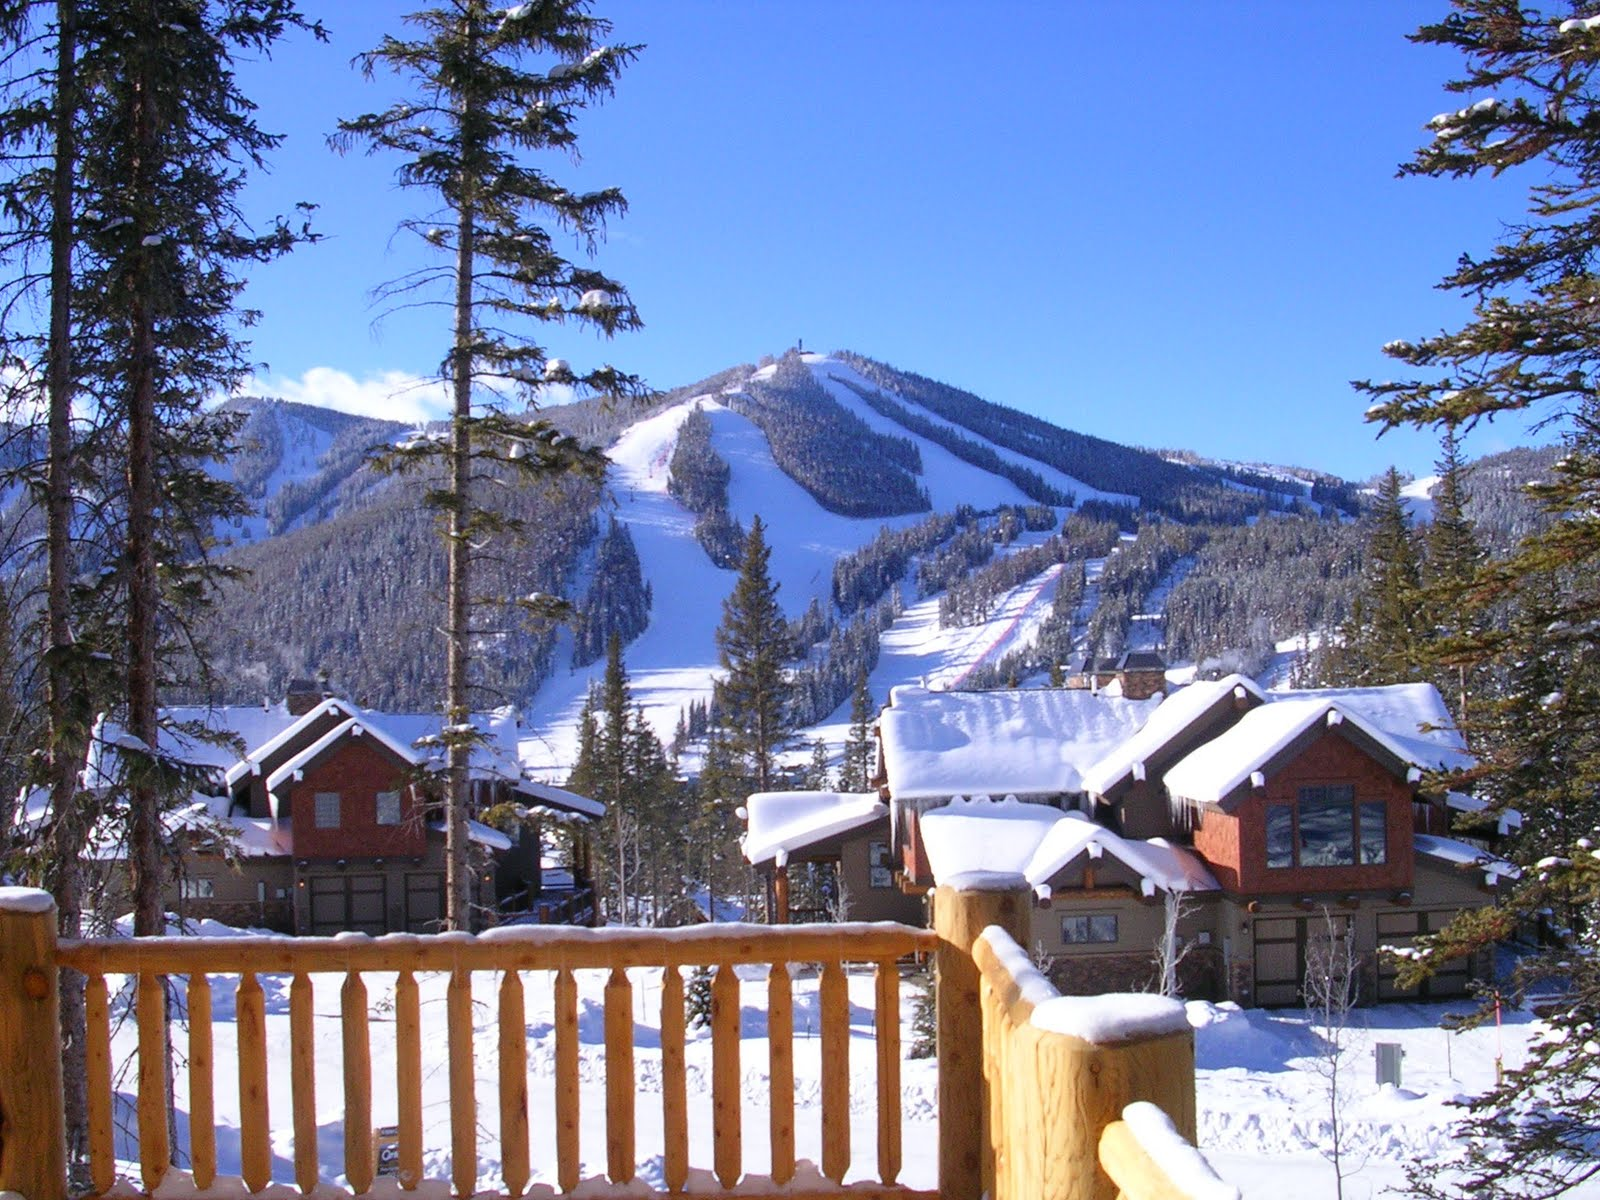 Vacation home rentals in winter park and grand lake 5 for Cabin rentals in winter park co